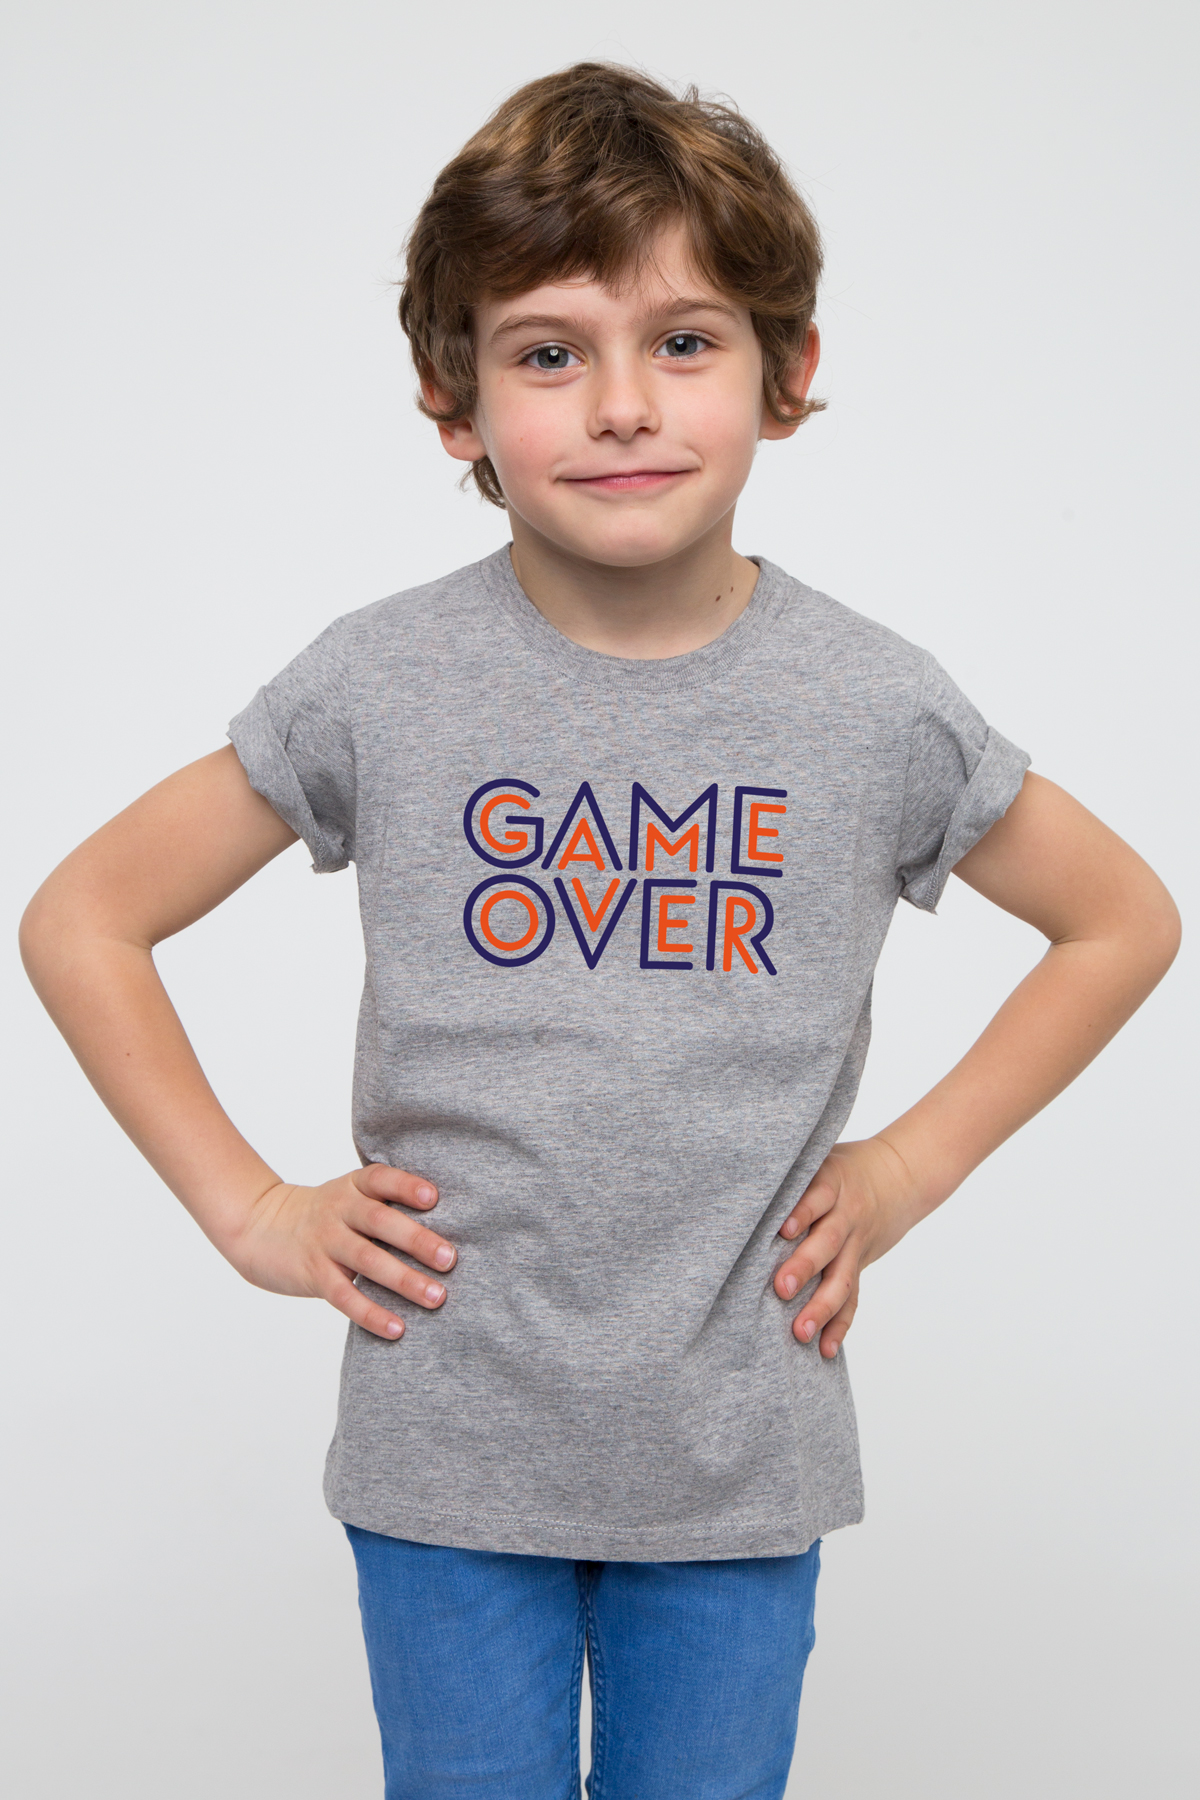 Tshirt GAME OVER French Disorder